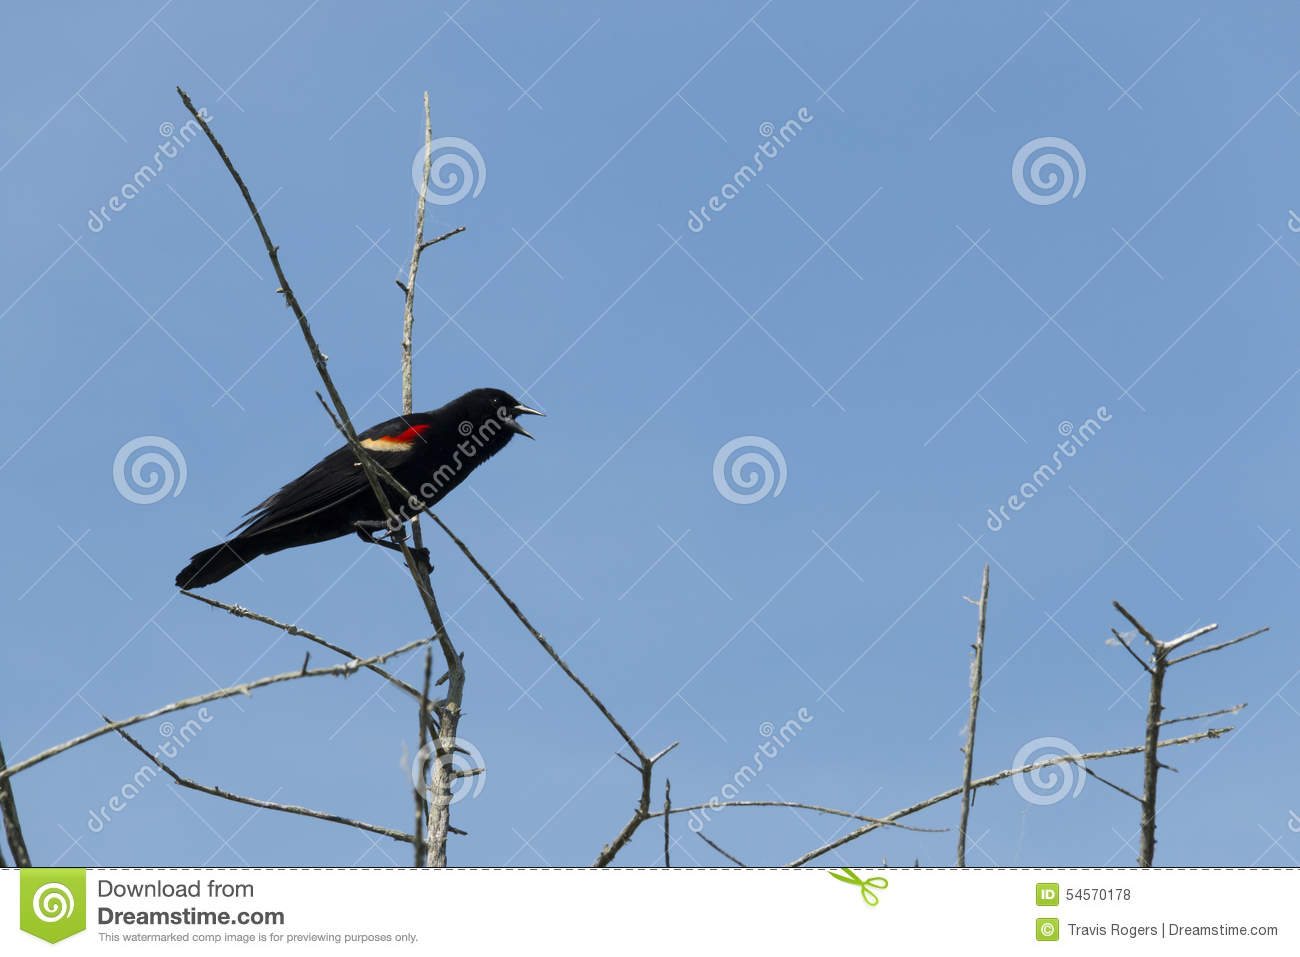 Redwing Black Bird stock photo  Image of clear, squawking